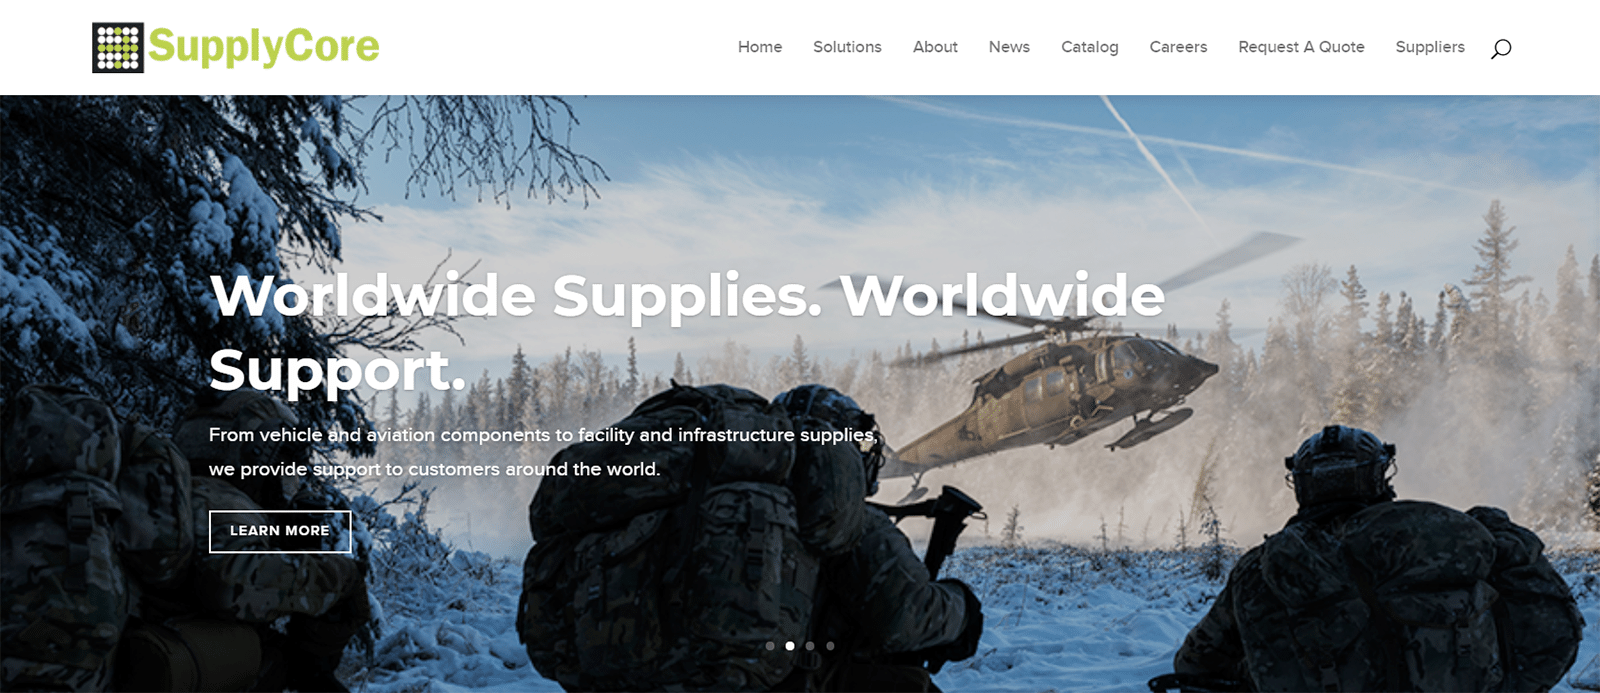 SupplyCore Inc. Teams with AAXIS and Oro toUpgrade Its Digital Commerce Systems